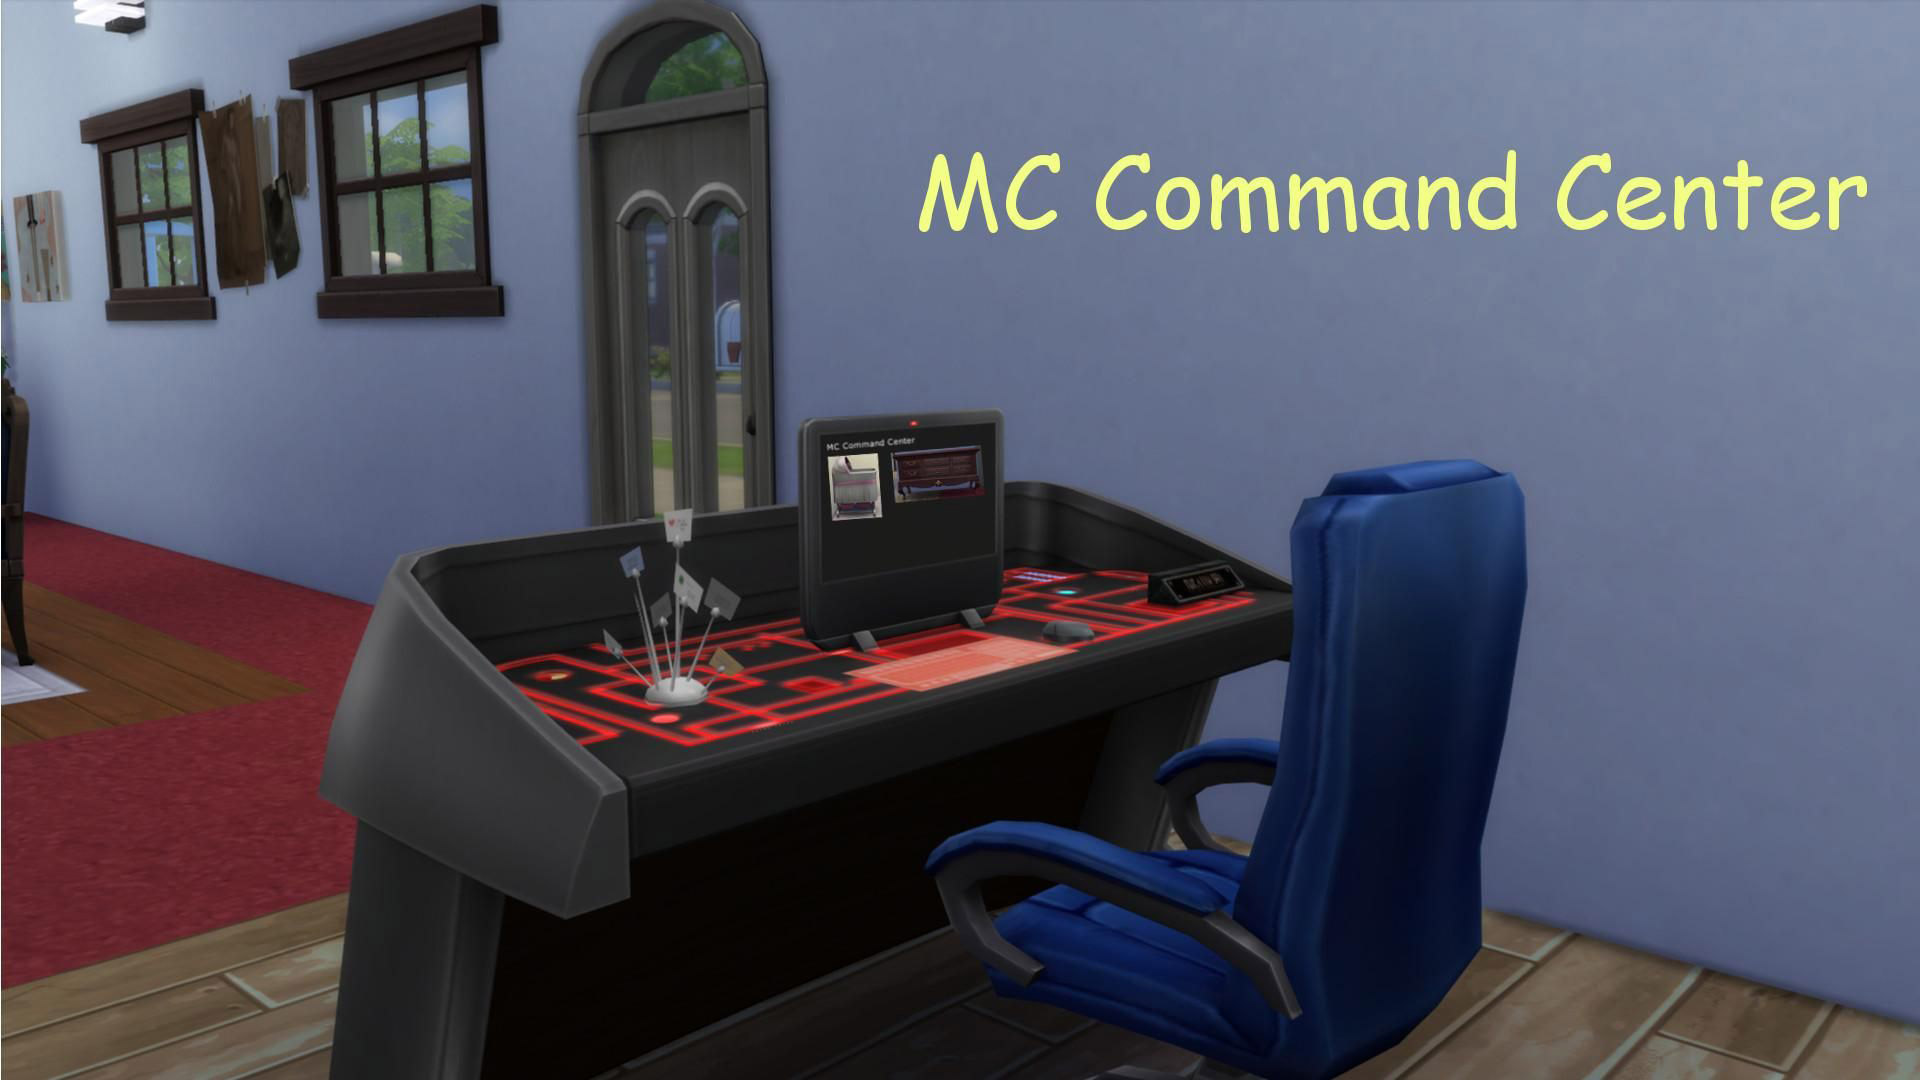 MC Command Center - The Sims 4 Catalog